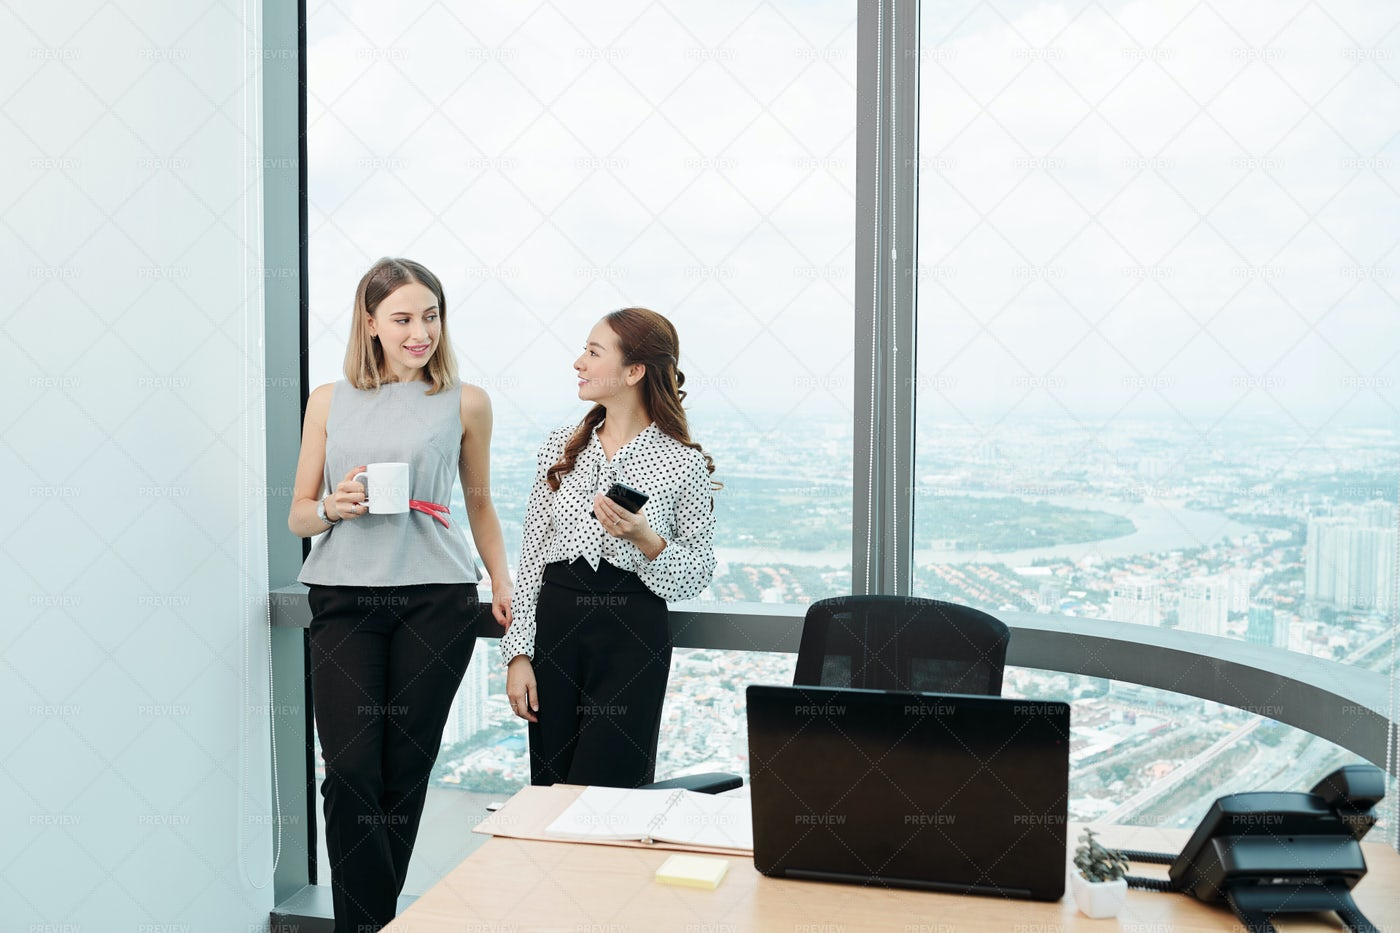 Gossiping Female Coworkers: Stock Photos